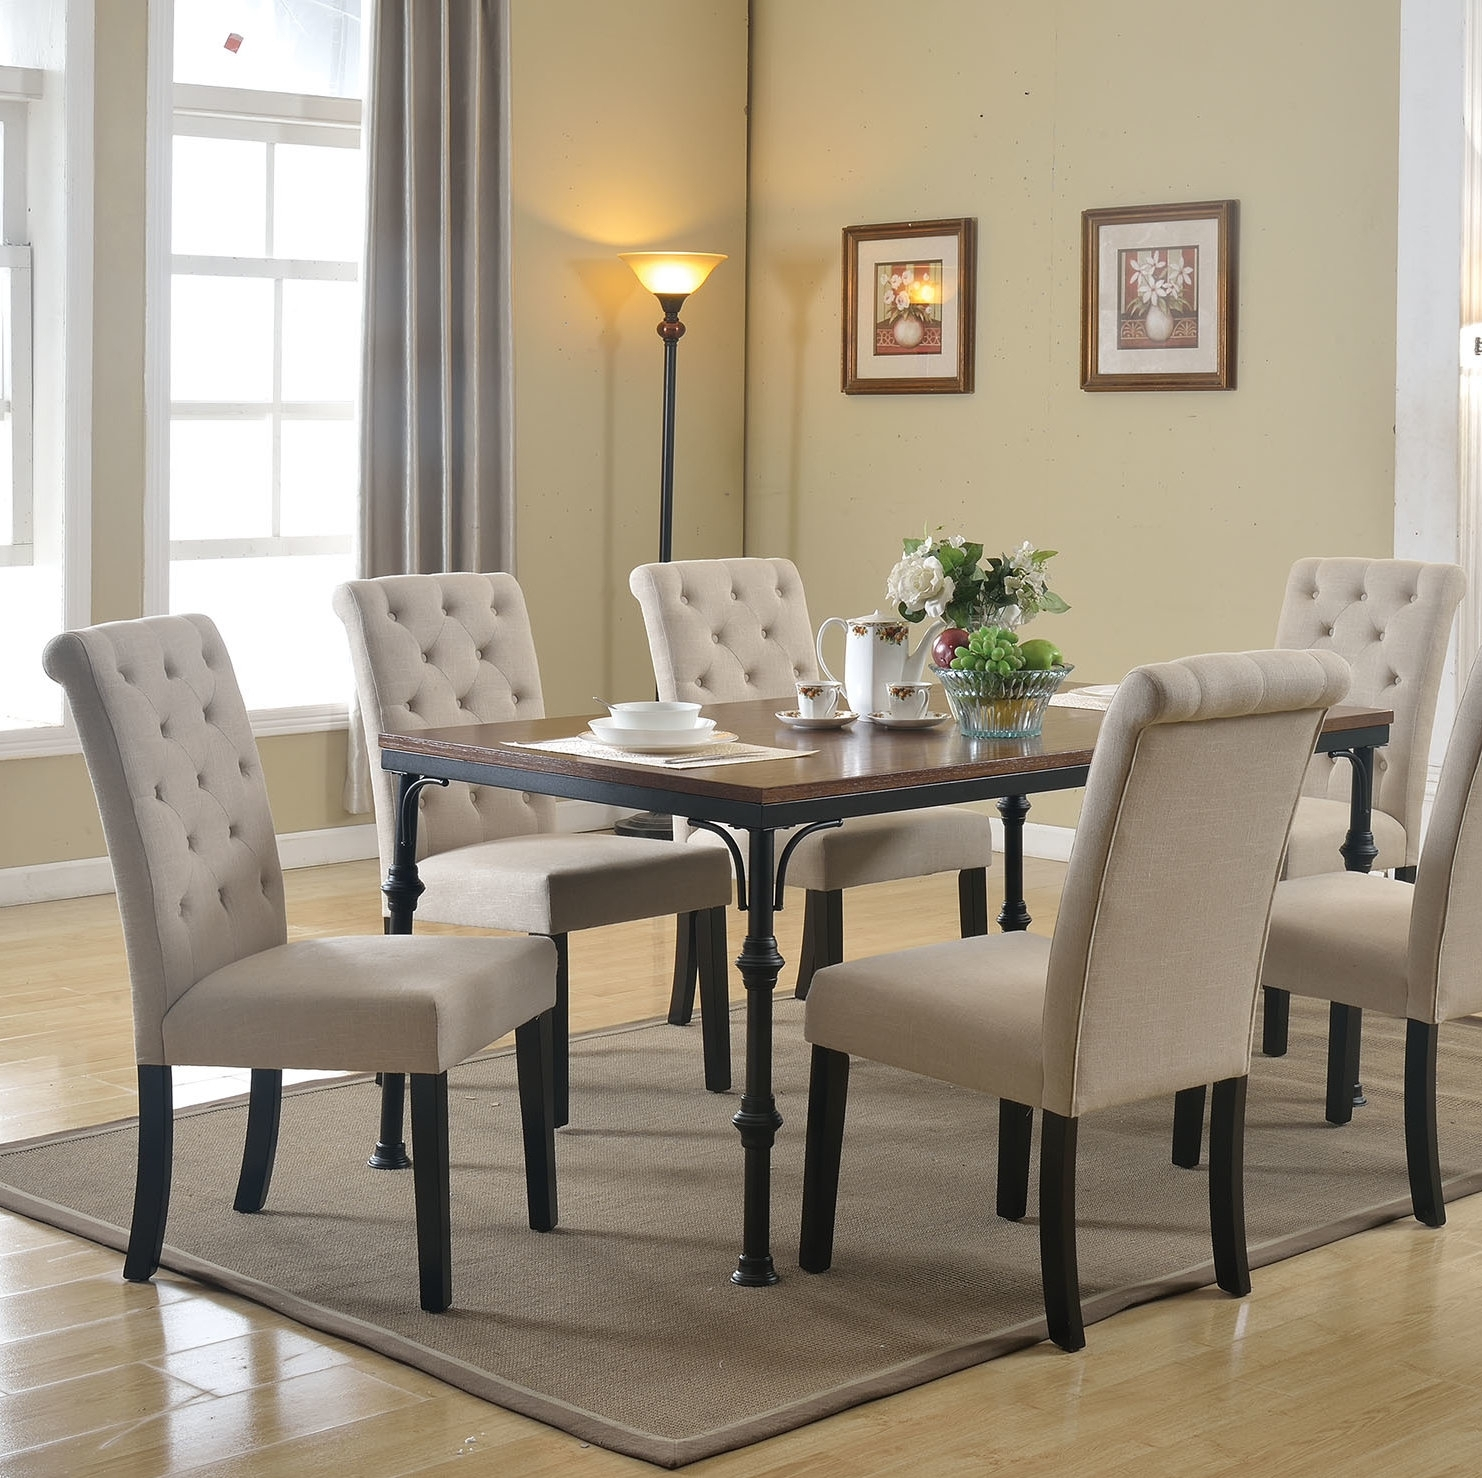 Gracie Oaks Tyerell 7 Piece Dining Set | Wayfair Throughout Latest Caira Black 5 Piece Round Dining Sets With Upholstered Side Chairs (Image 12 of 20)